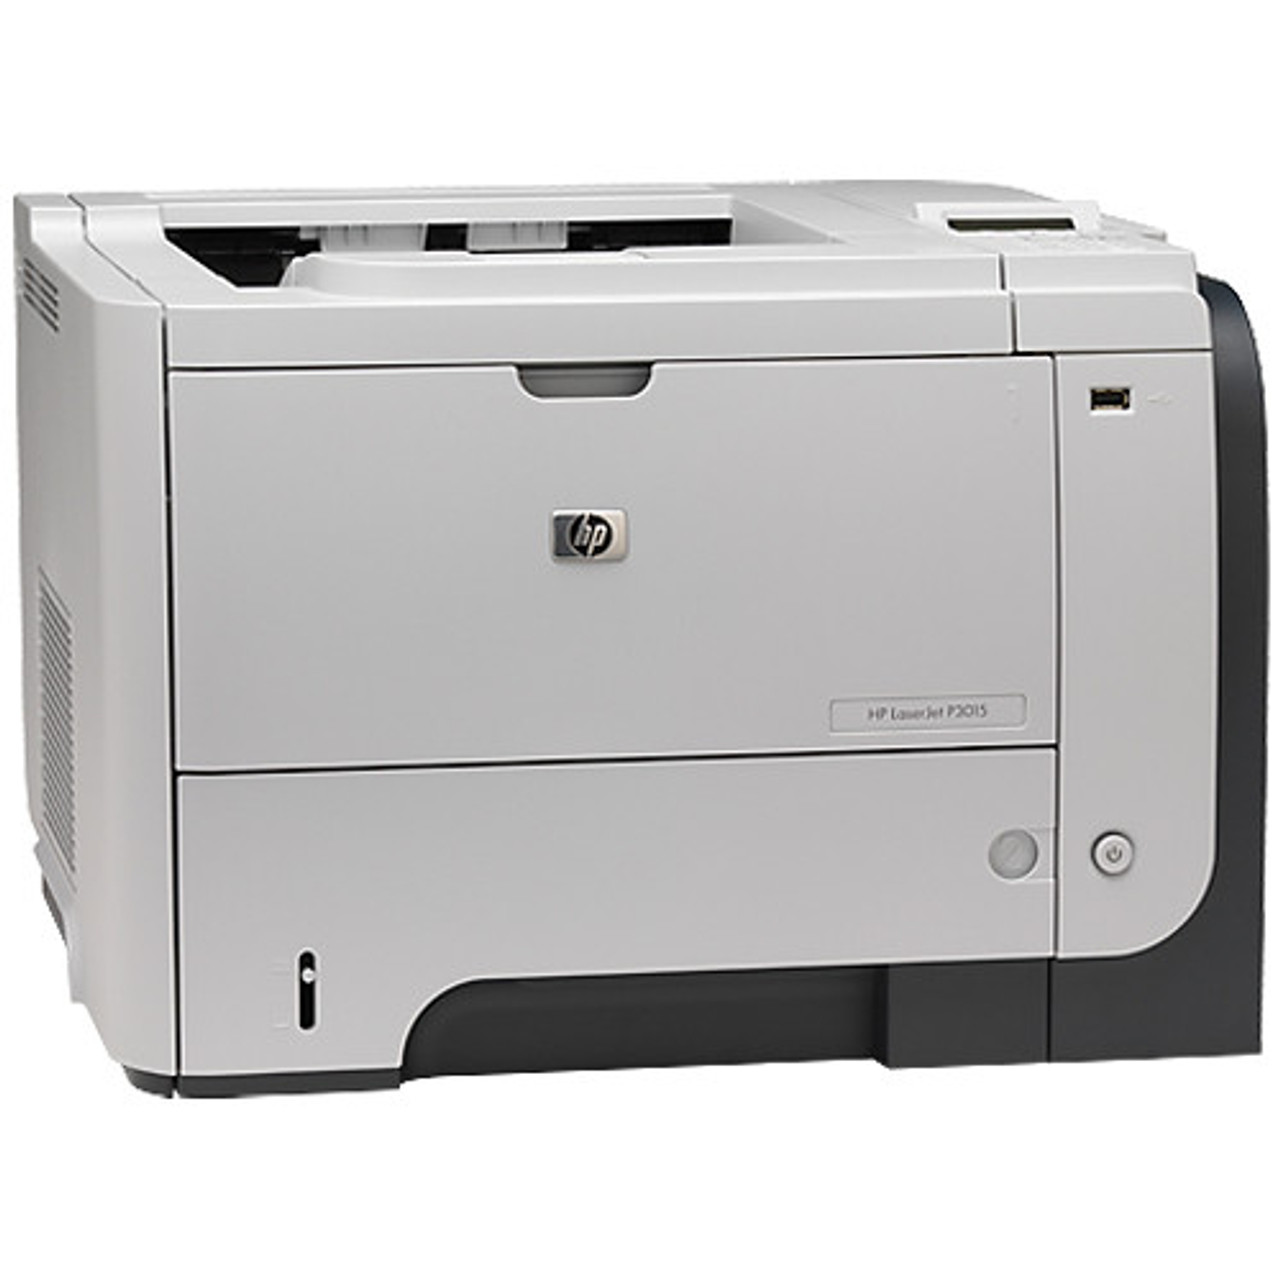 HP LaserJet P3015n - CE527A - HP Laser Printer for sale